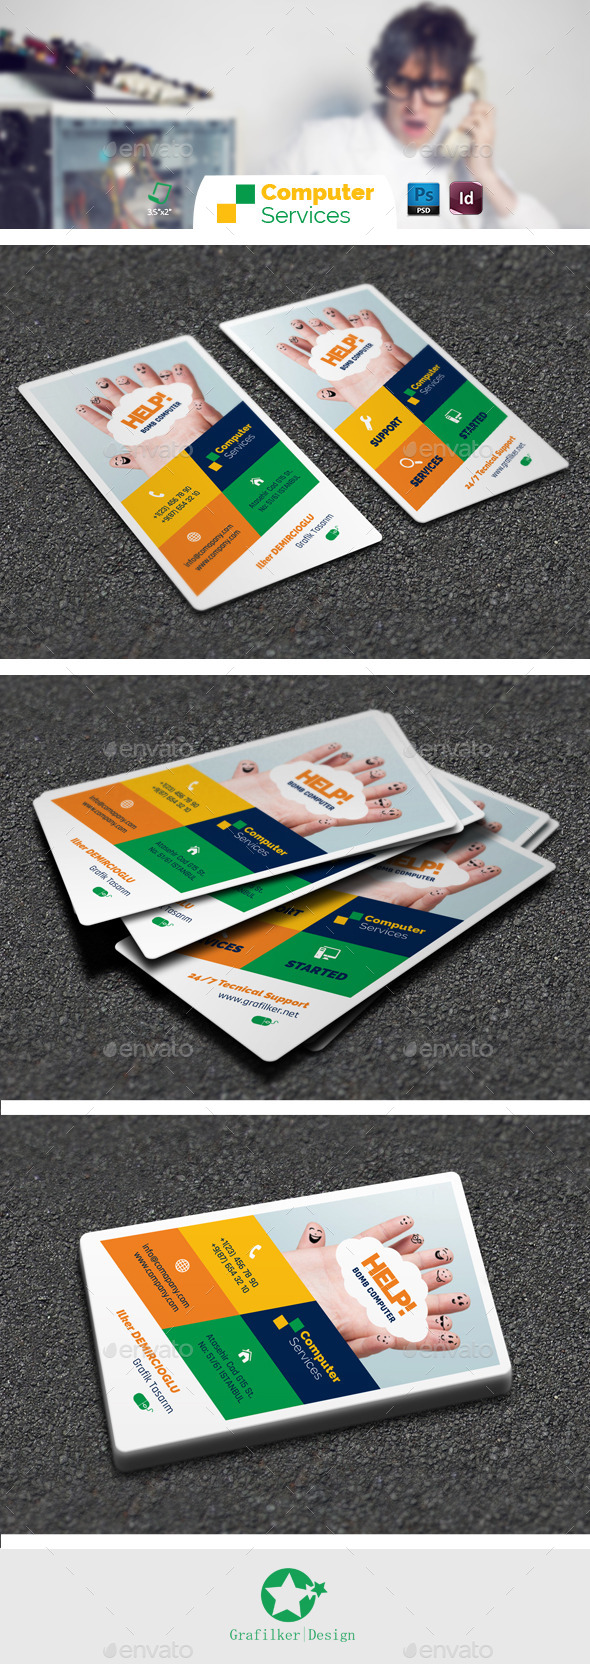 Computer repair business card templates by grafilker graphicriver computer repair business card templates creative business cards friedricerecipe Gallery